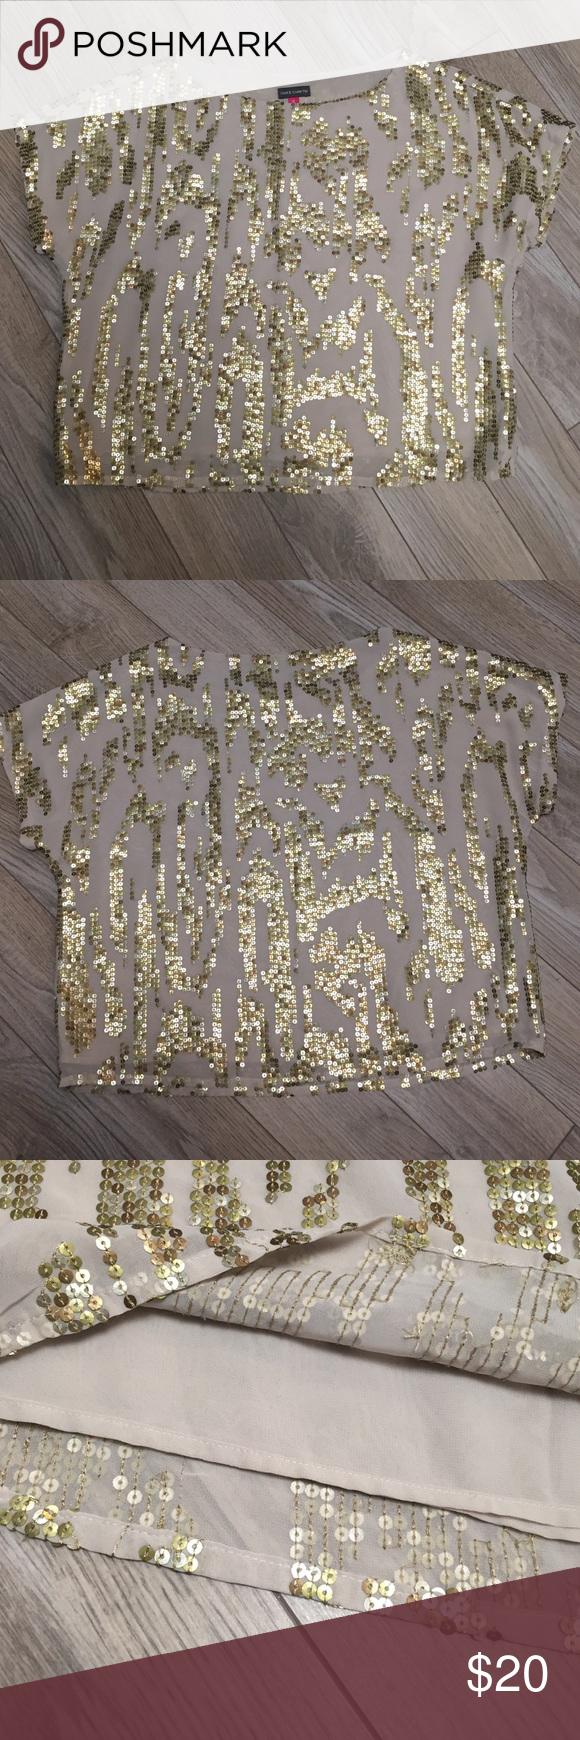 Vince Camuto Sequin Top This shirt is perfect for a night out! Gold, bronze and silver sequin design front and back. Cropped boxy cut with a slightly winged short sleeve. Fully lined! Vince Camuto Tops Blouses